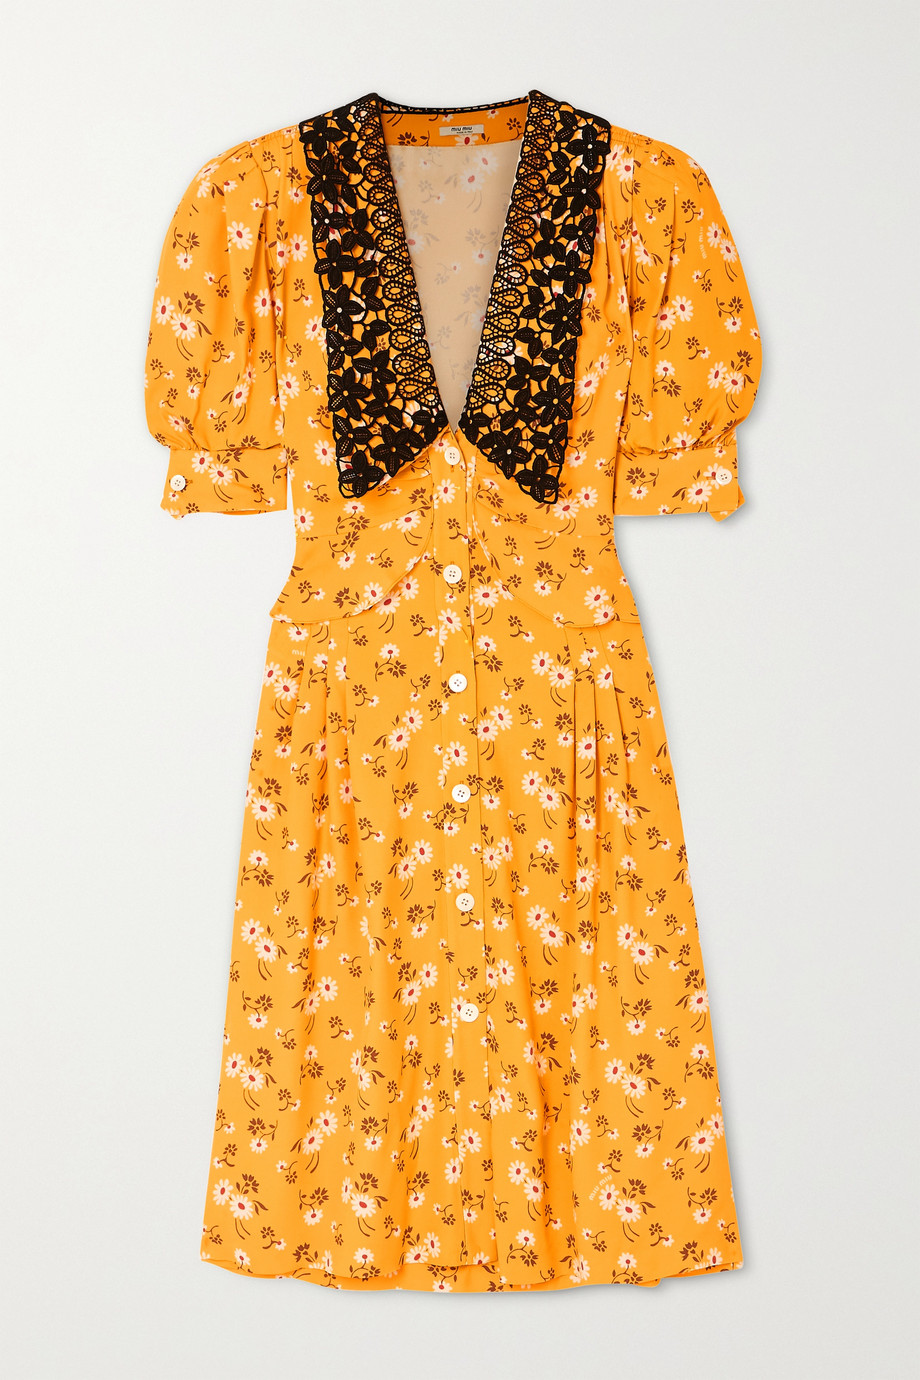 Miu Miu Lace-trimmed floral-print crepe midi dress